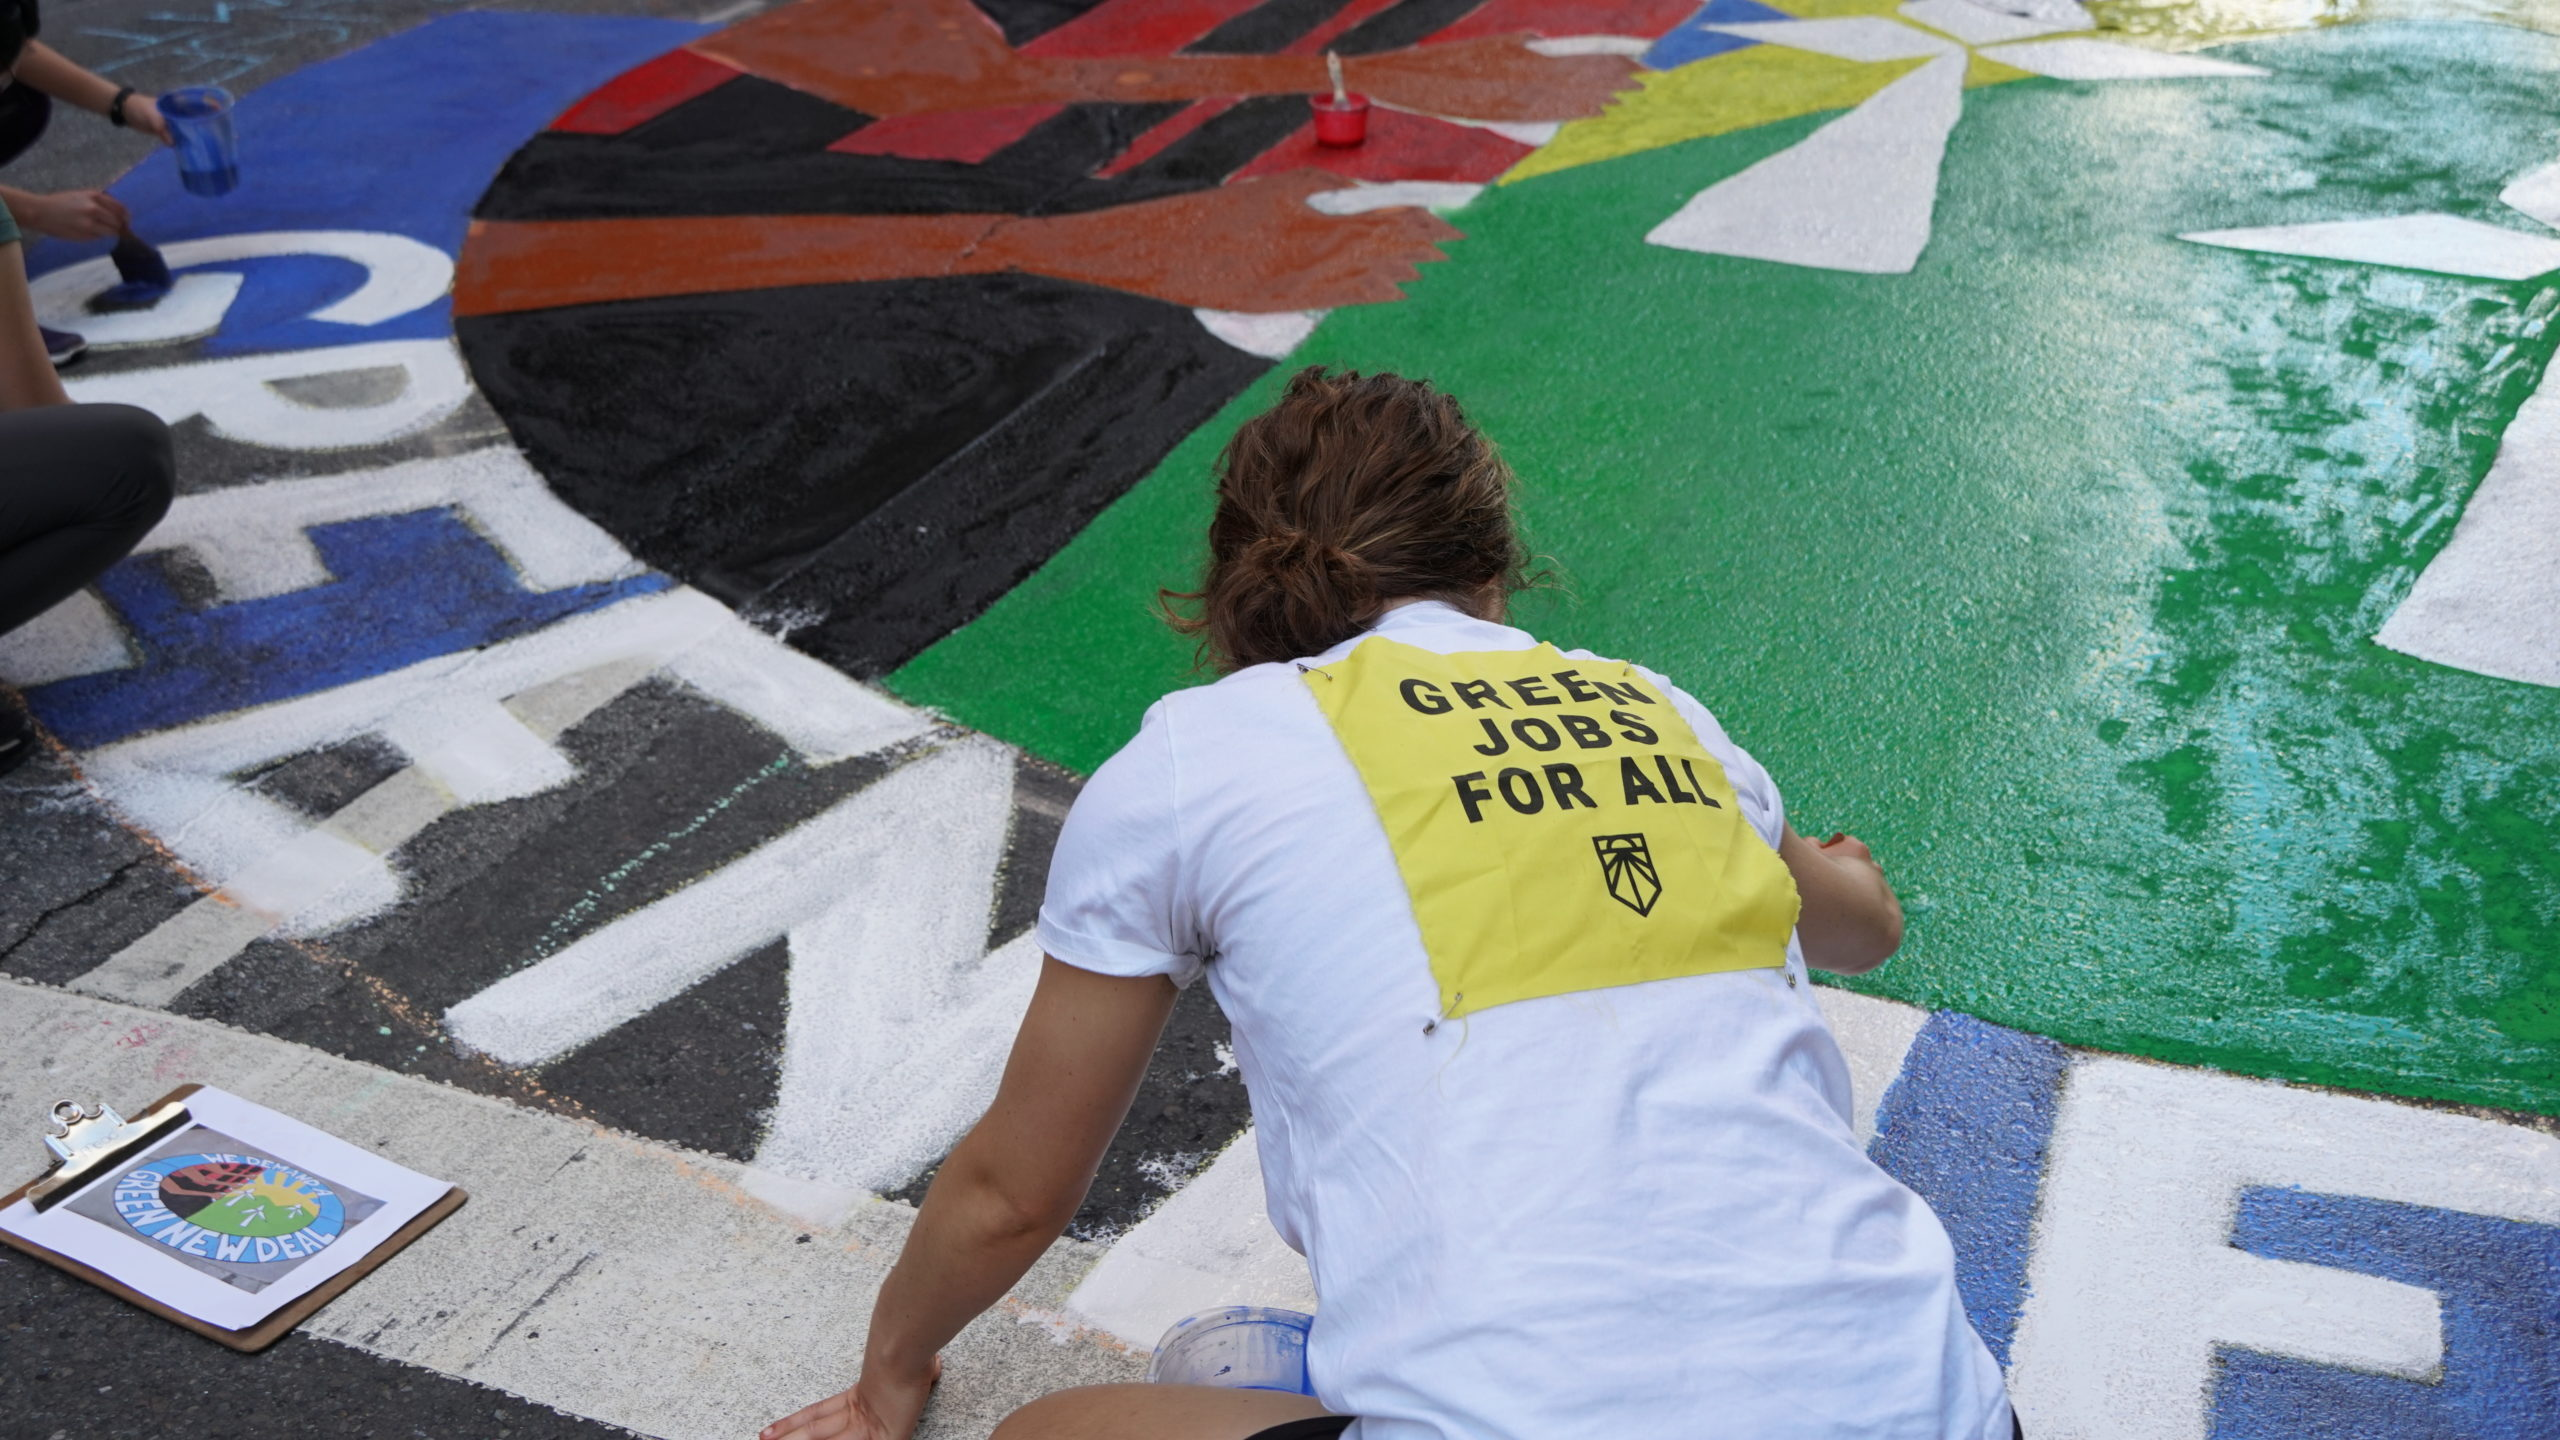 An activist helps to paint a floor mural of the Green New Deal during the September 2019 Climate Strike.